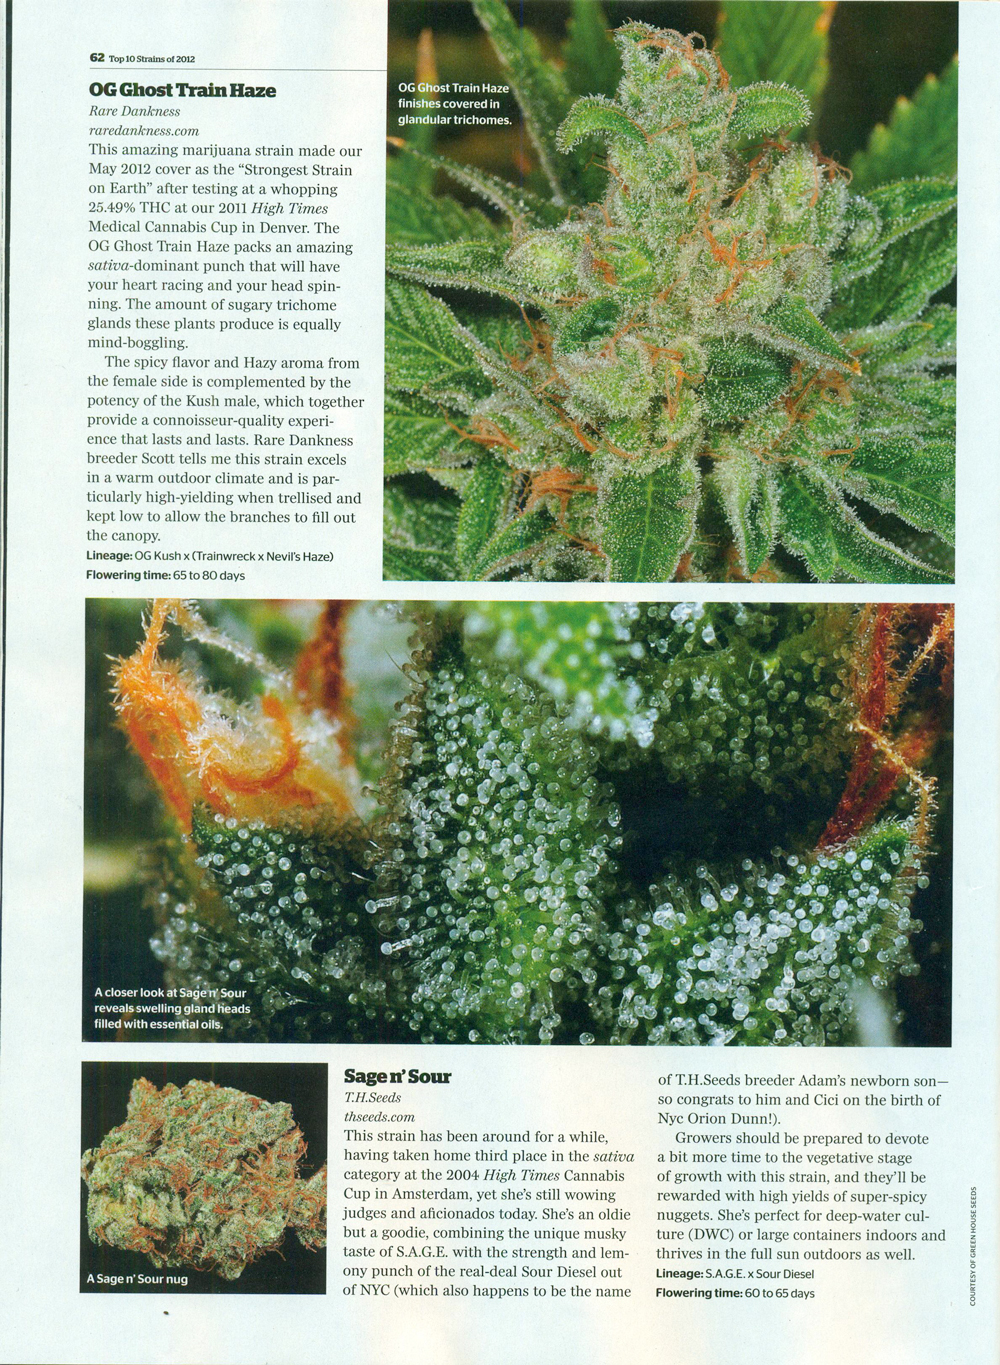 Hightimes-top-10-strains-2012-sage-n-sour-article.jpg